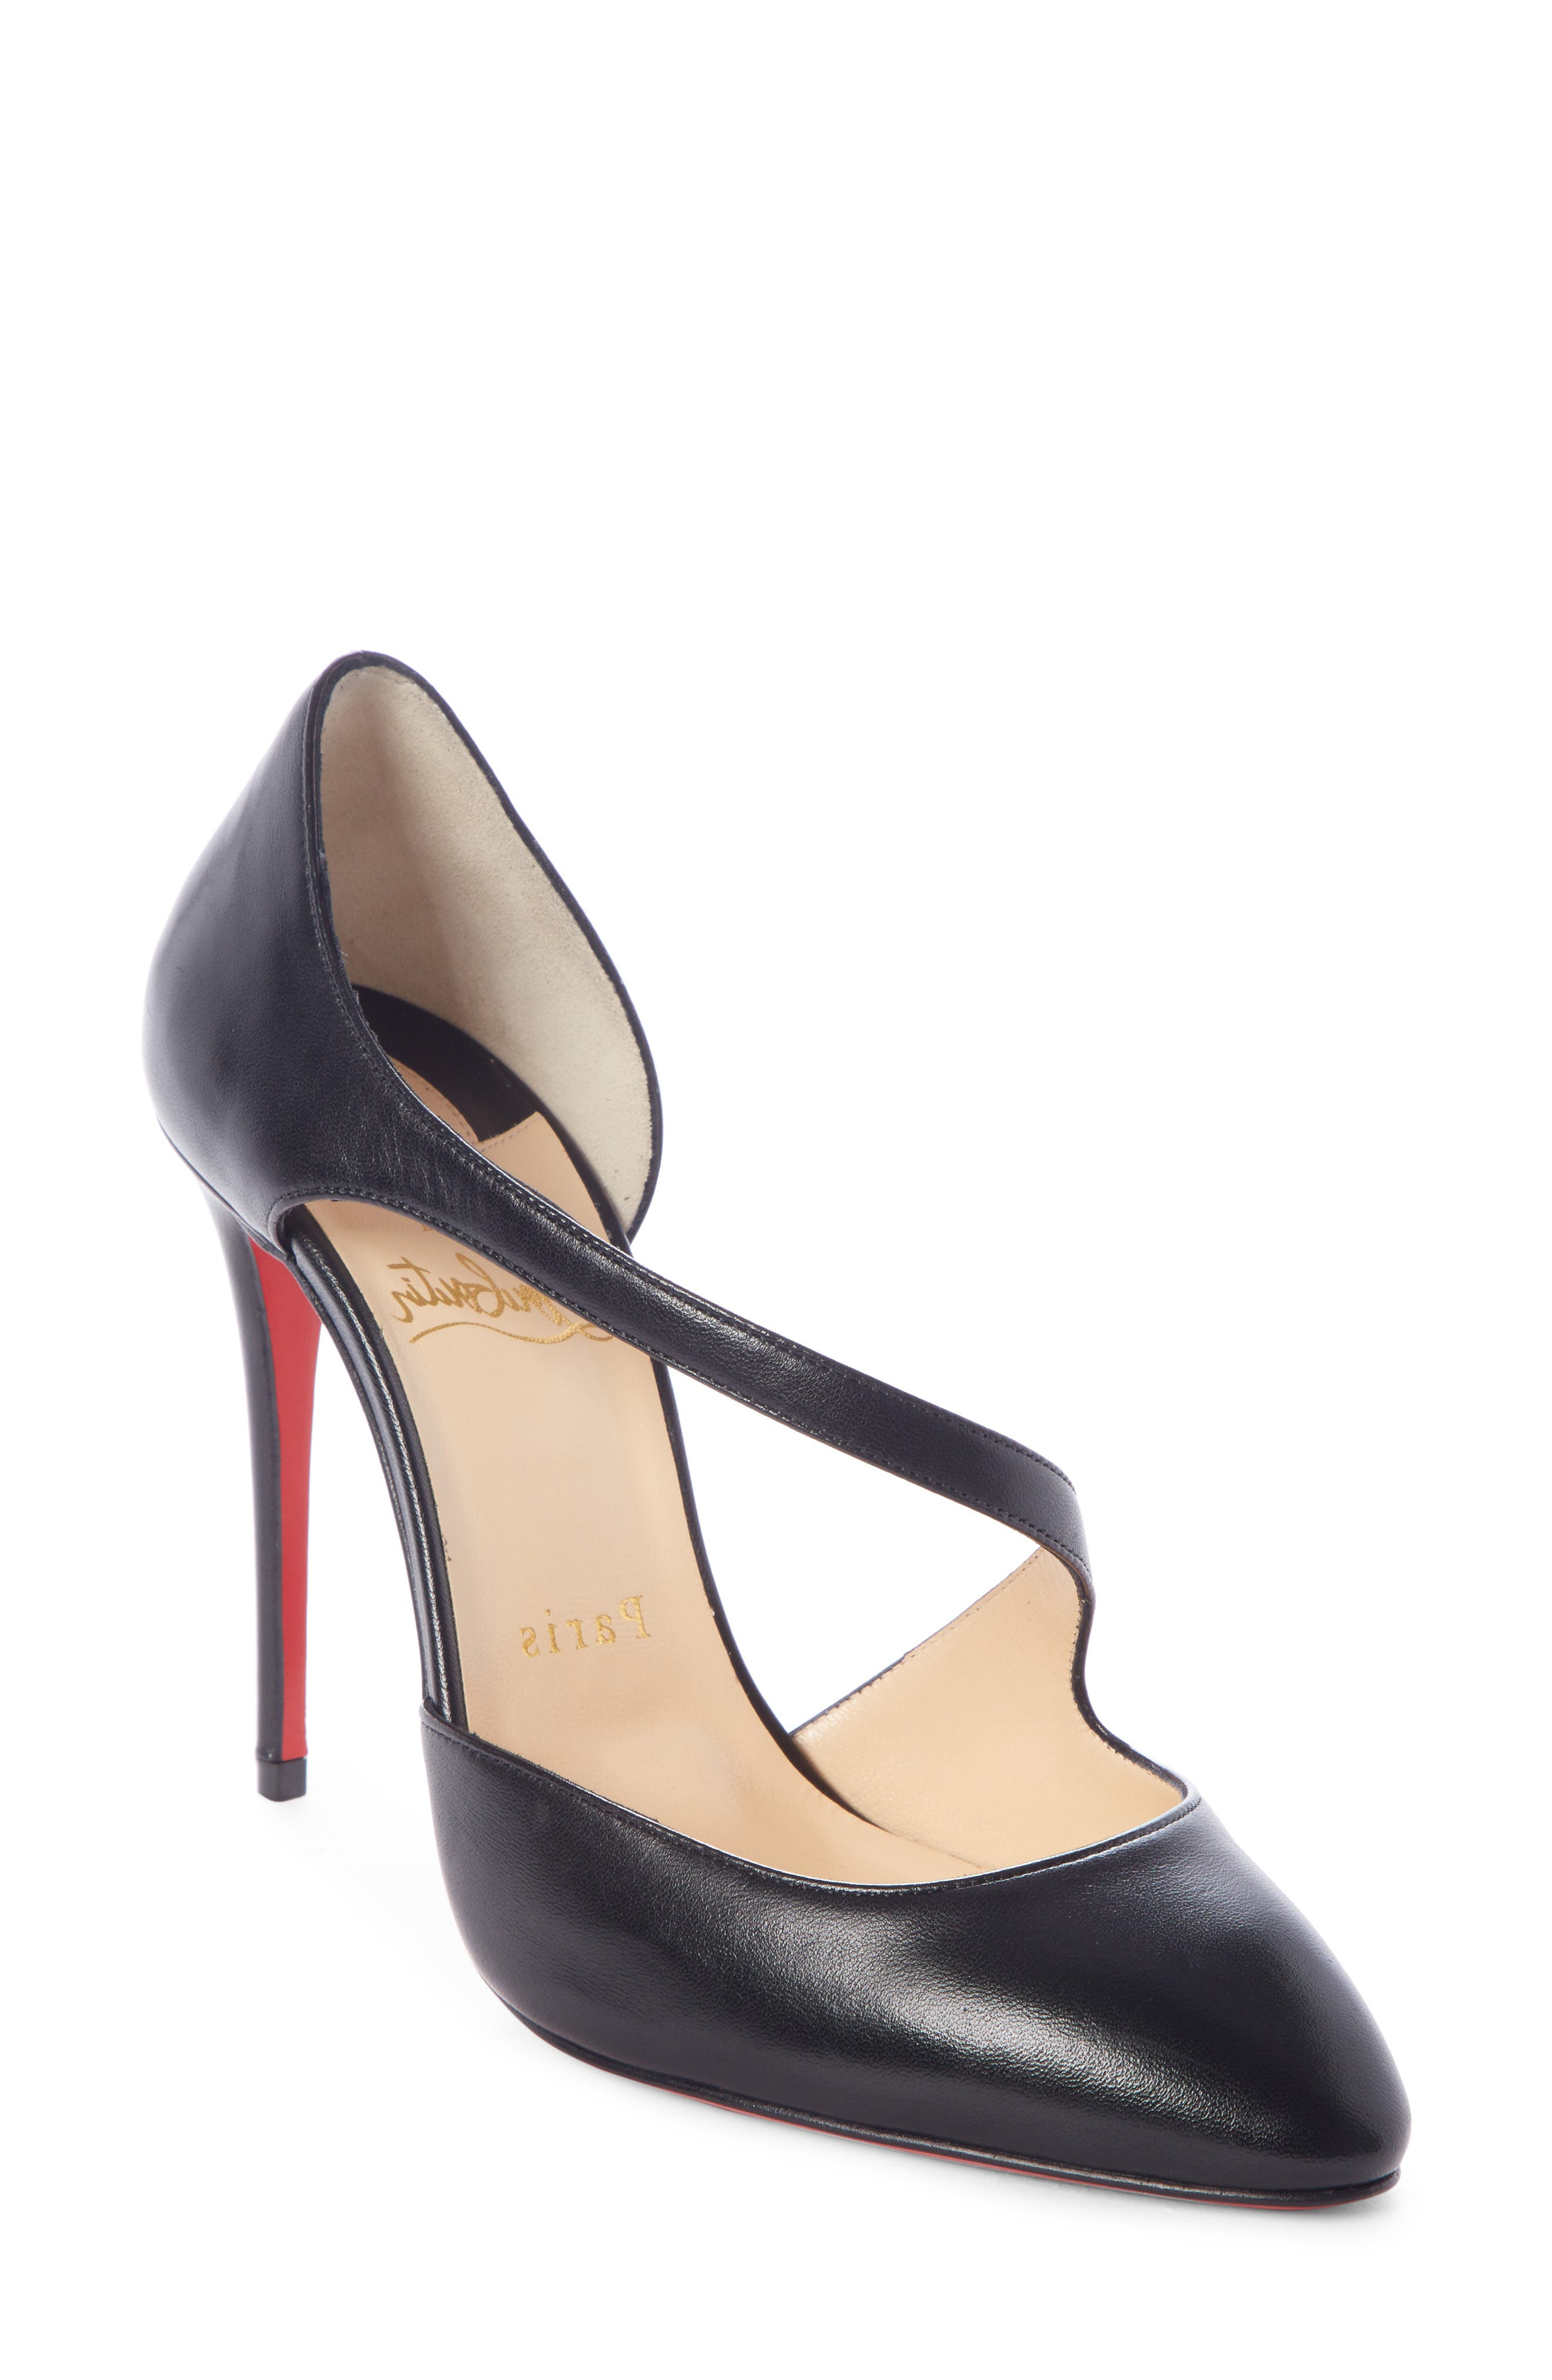 CHRISTIAN LOUBOUTIN, Catchy One Strappy d'Orsay Pump, Main thumbnail 1, color, BLACK